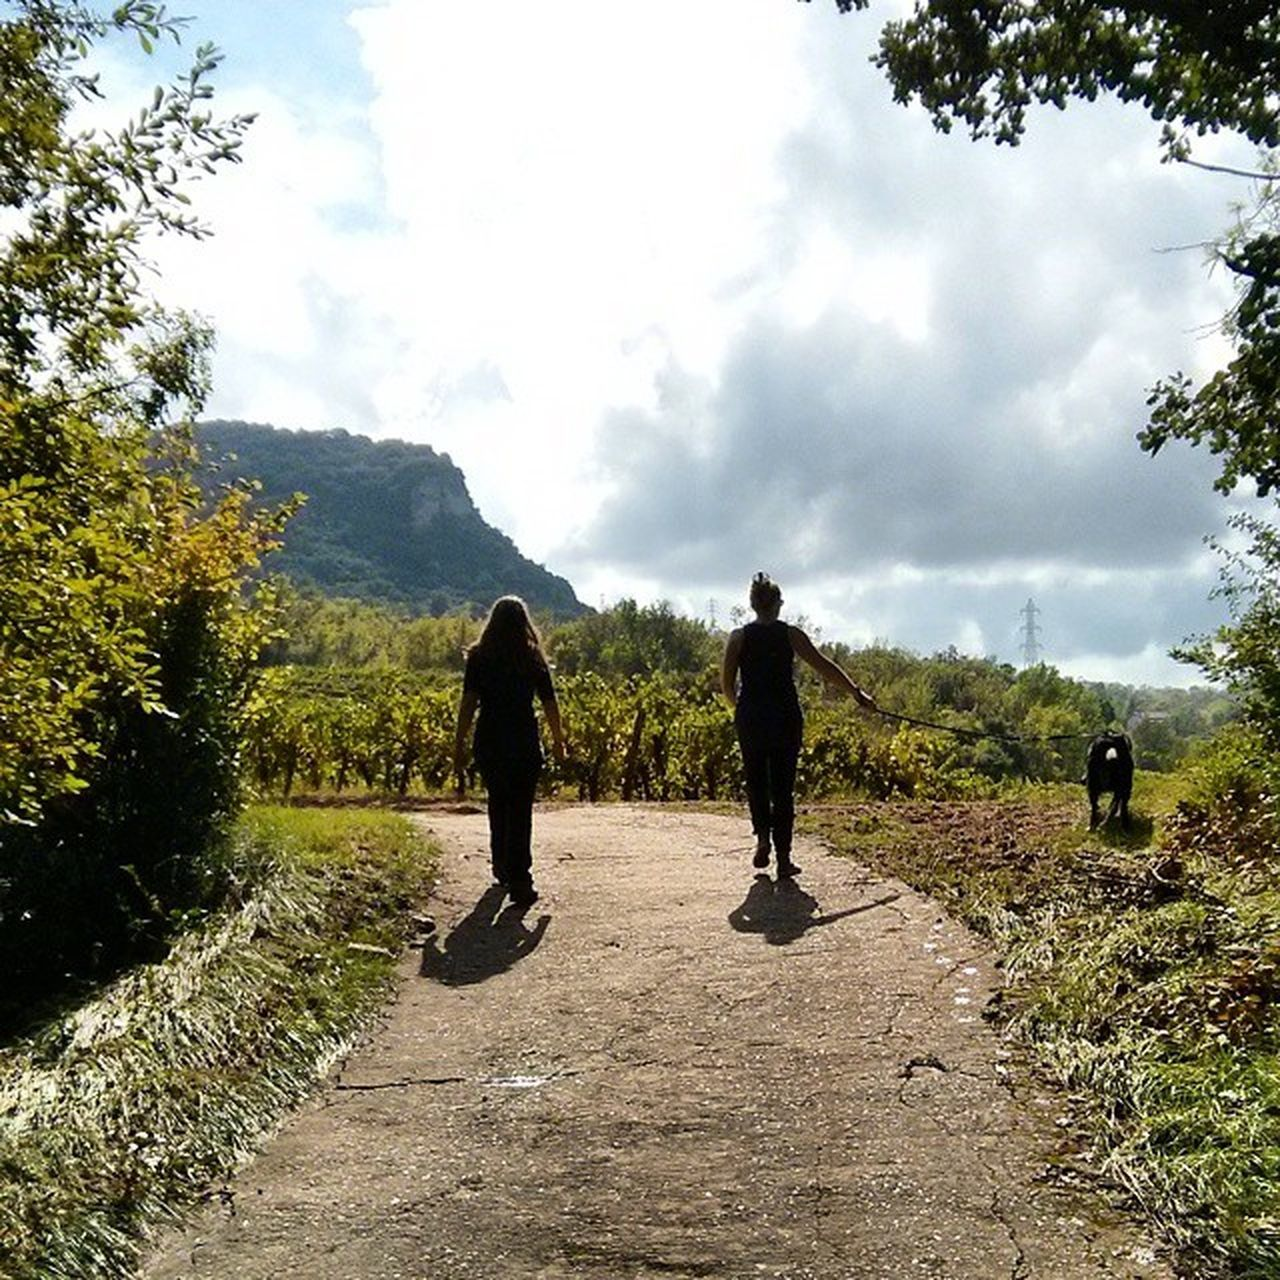 two people, full length, cloud - sky, real people, sky, nature, tree, walking, mountain, day, beauty in nature, rear view, men, outdoors, leisure activity, scenics, landscape, togetherness, lifestyles, tranquility, women, standing, growth, grass, people